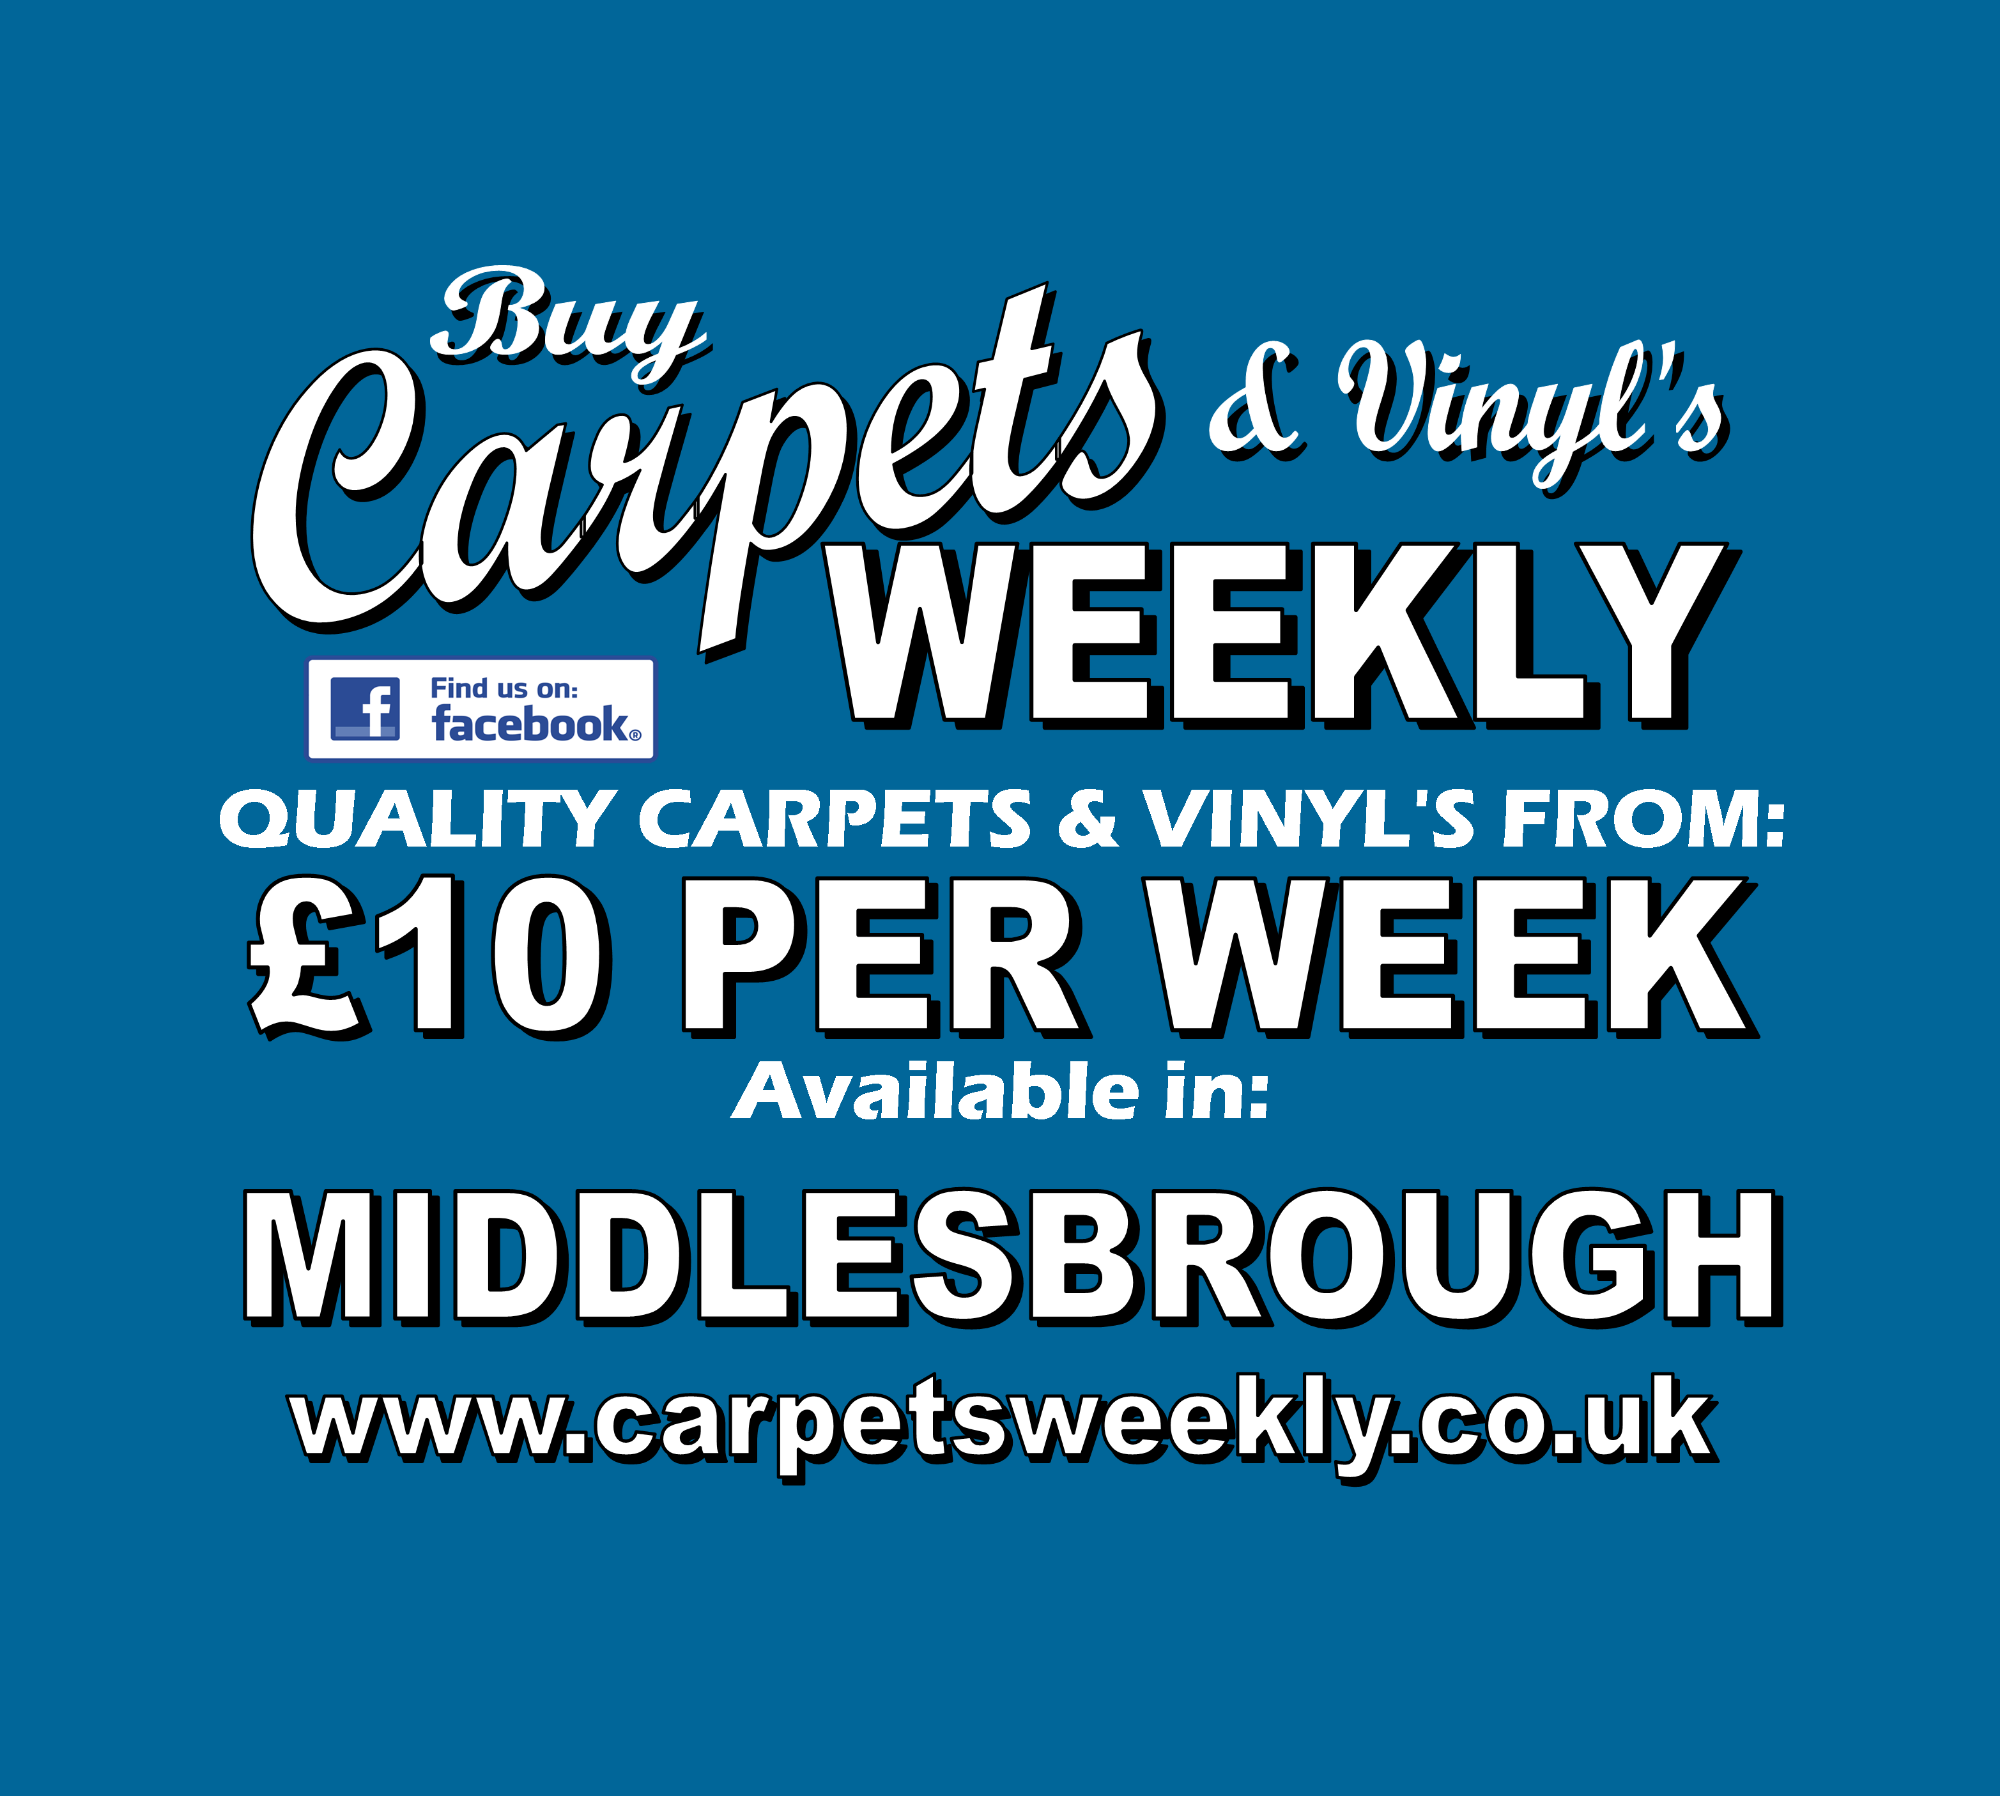 Carpets Weekly available in Middlesbrough